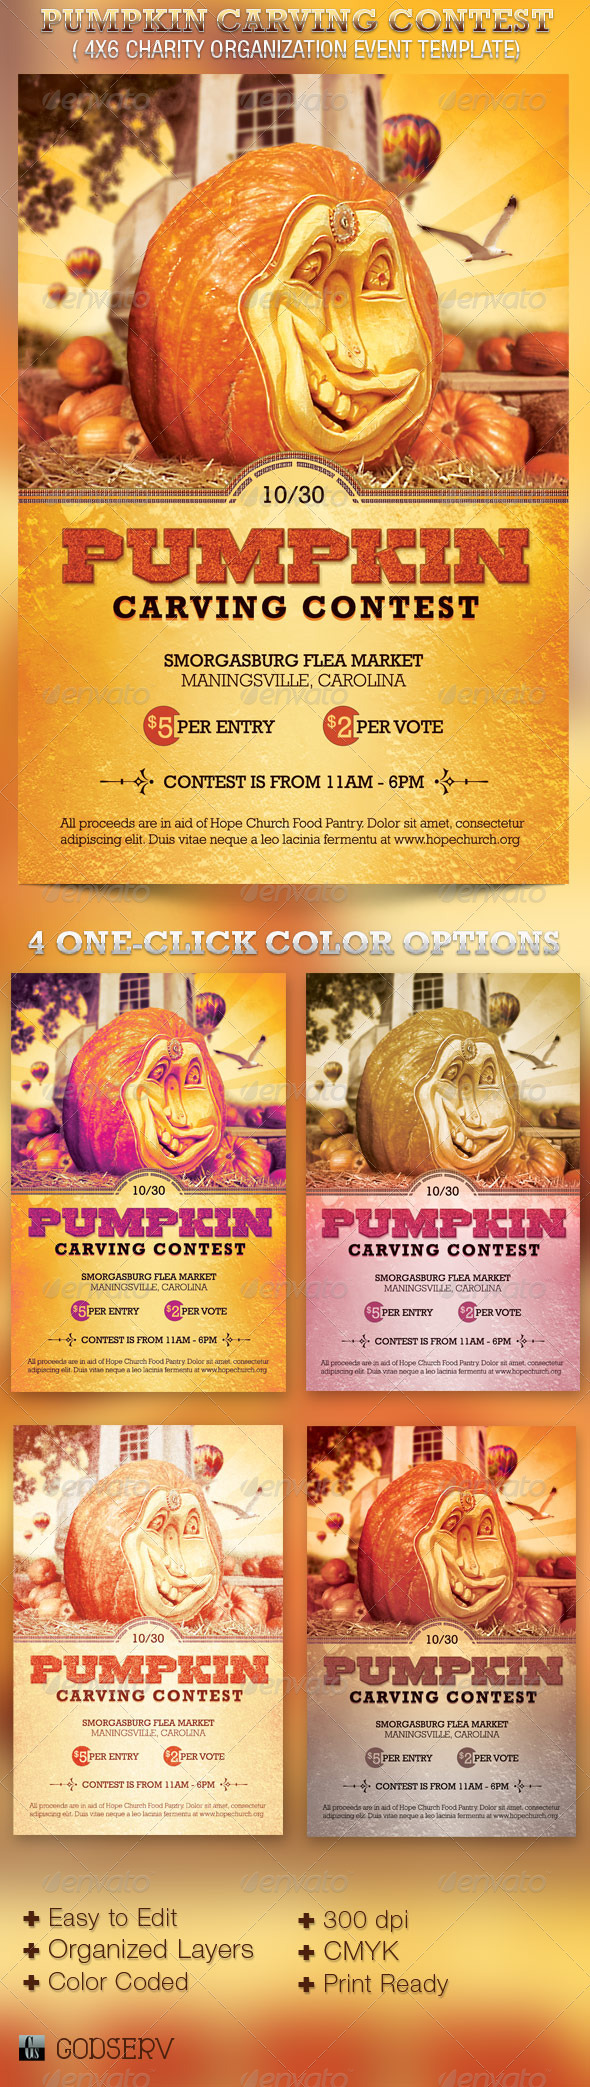 Pumpkin Carving Contest Charity Flyer Template - Church Flyers